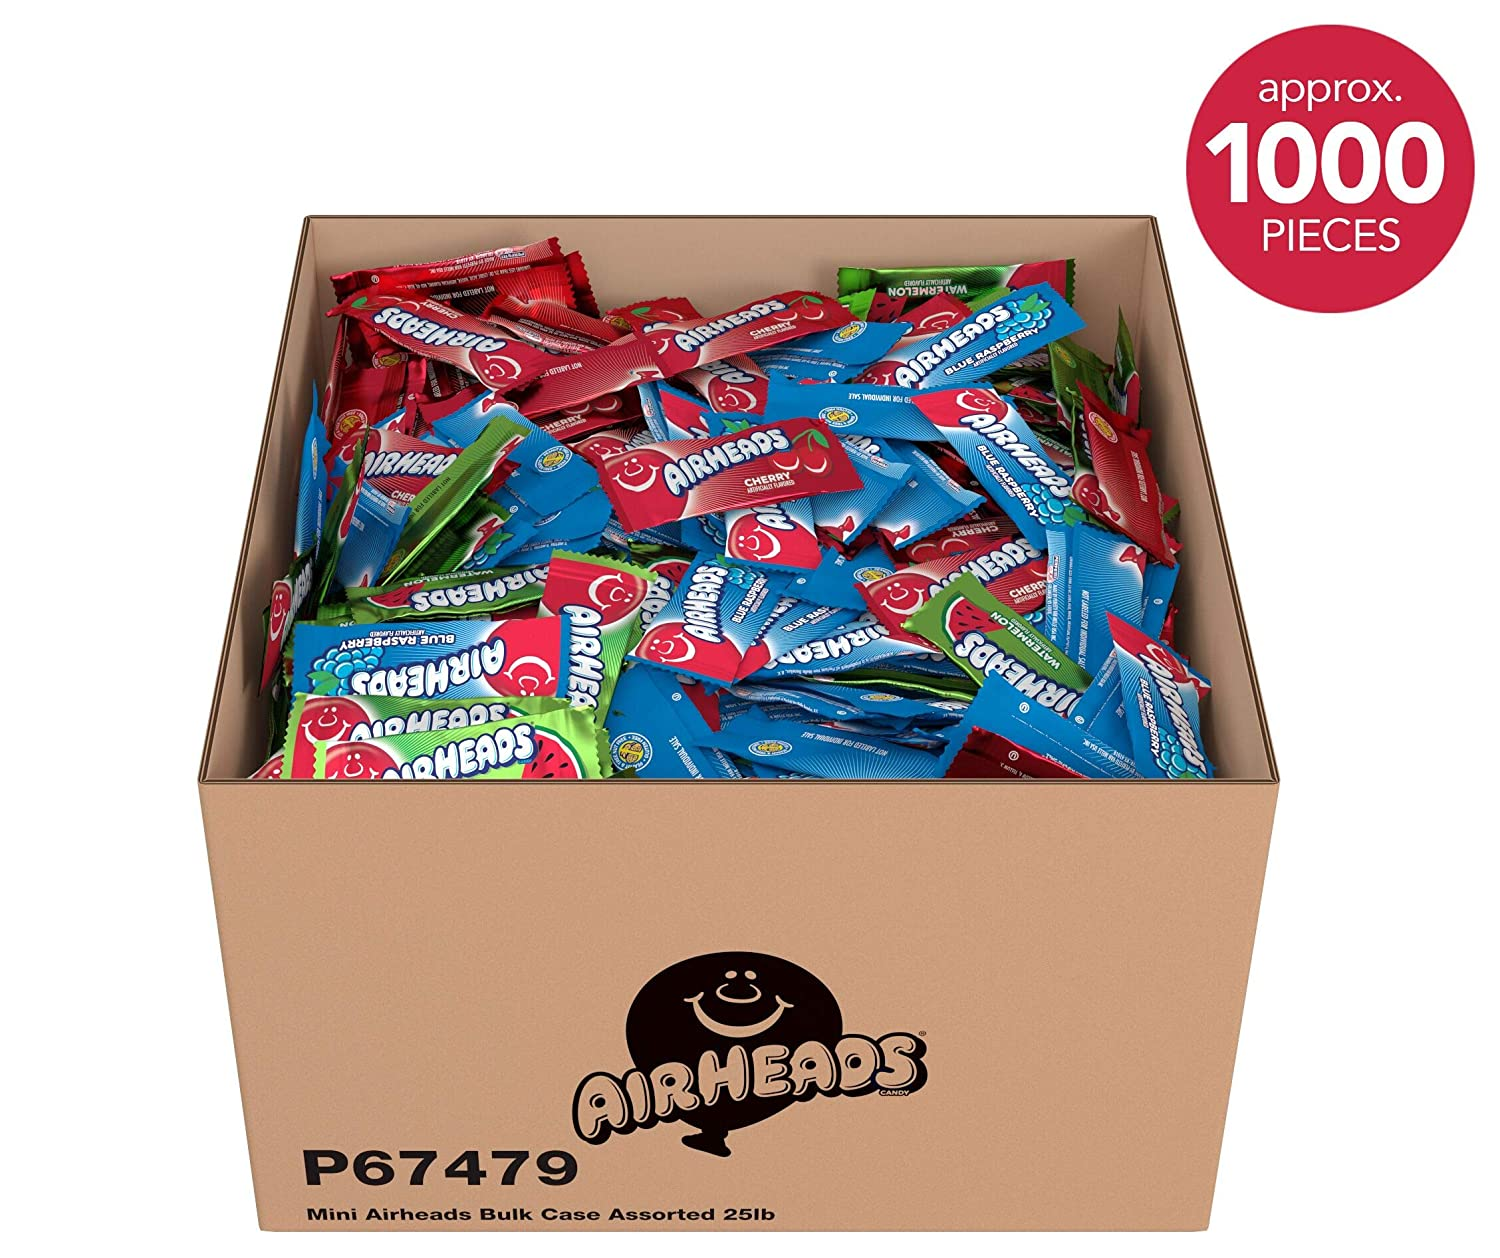 25-Lbs Airheads Candy Mini Bars Bulk Box (Assorted Flavors)